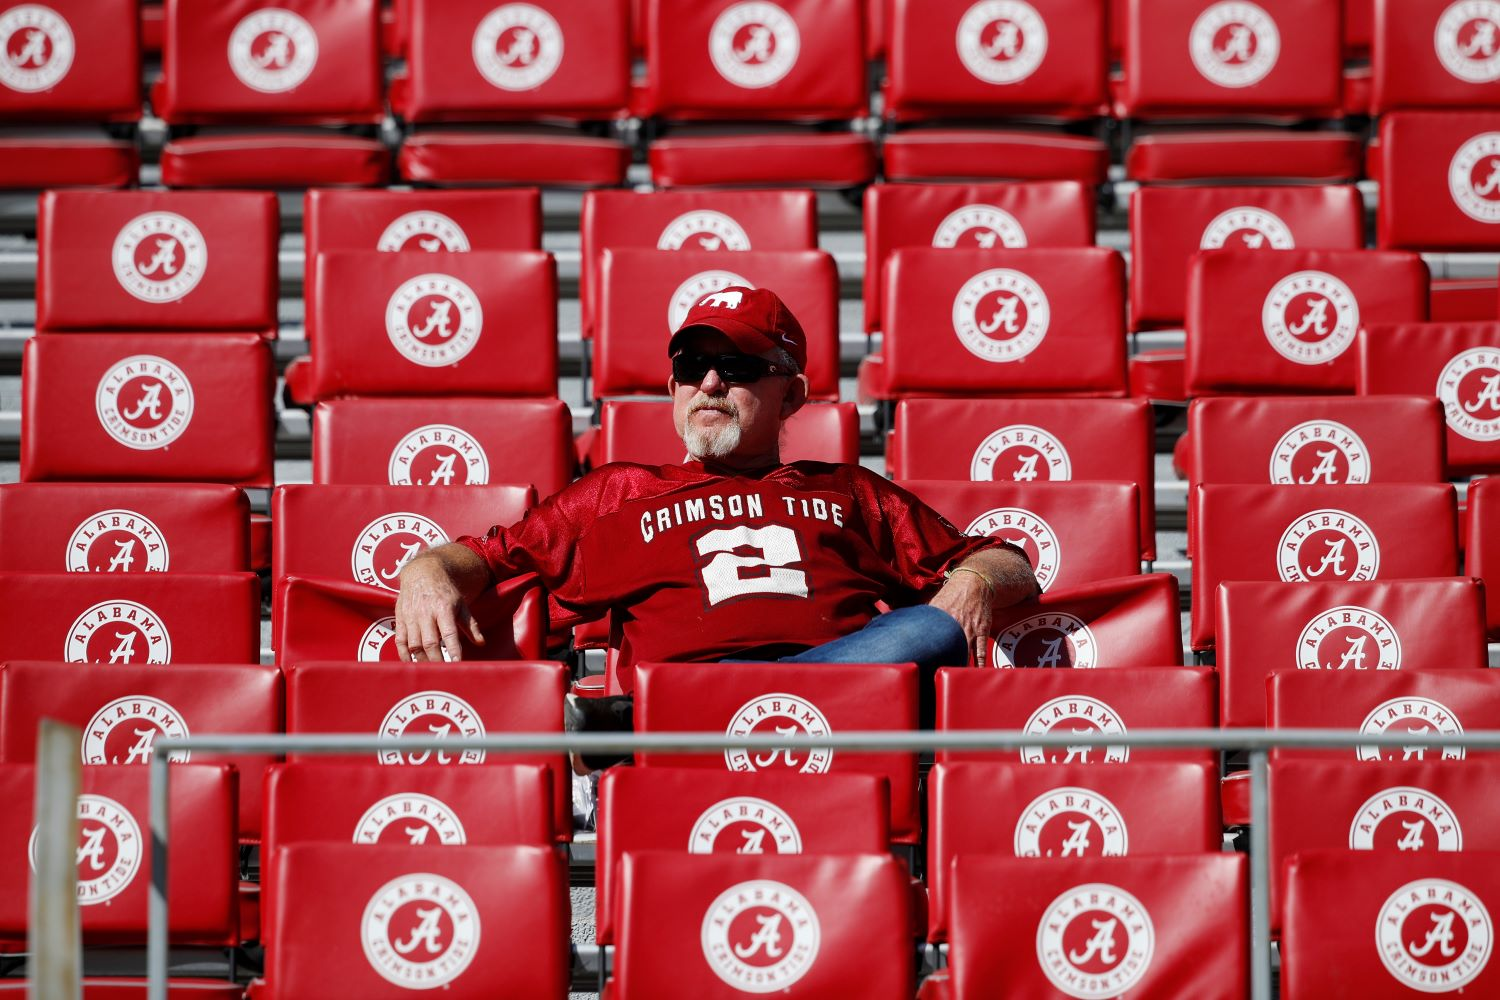 Alabama Football Narrowly Escaped the Death Penalty For a Criminal Scheme Involving $150,000 and a Phony ACT Test